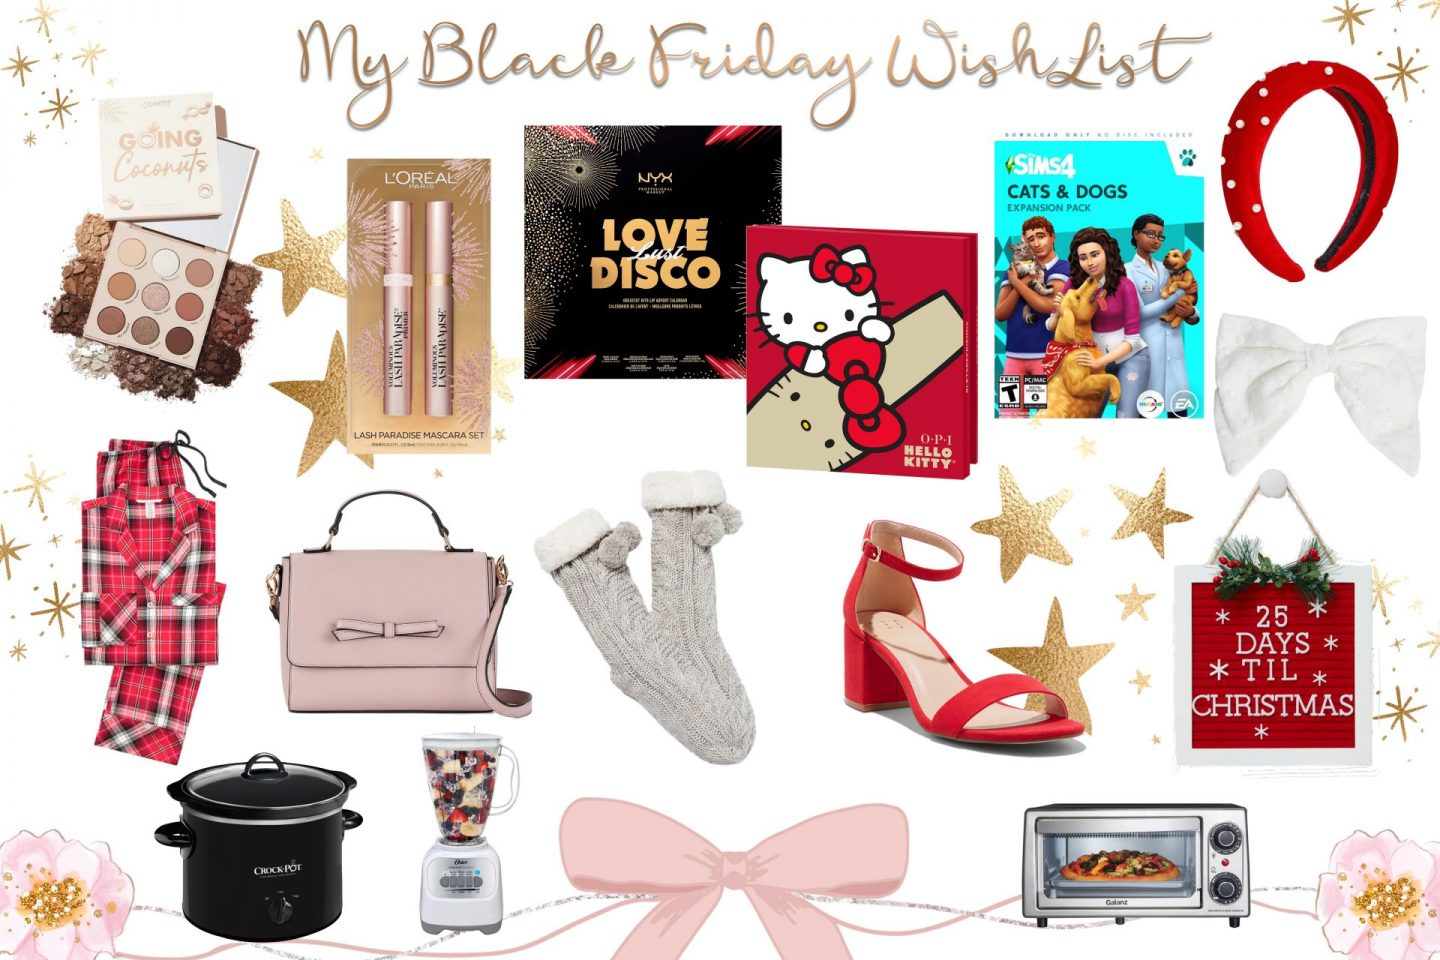 My Black Friday Wish List 2019